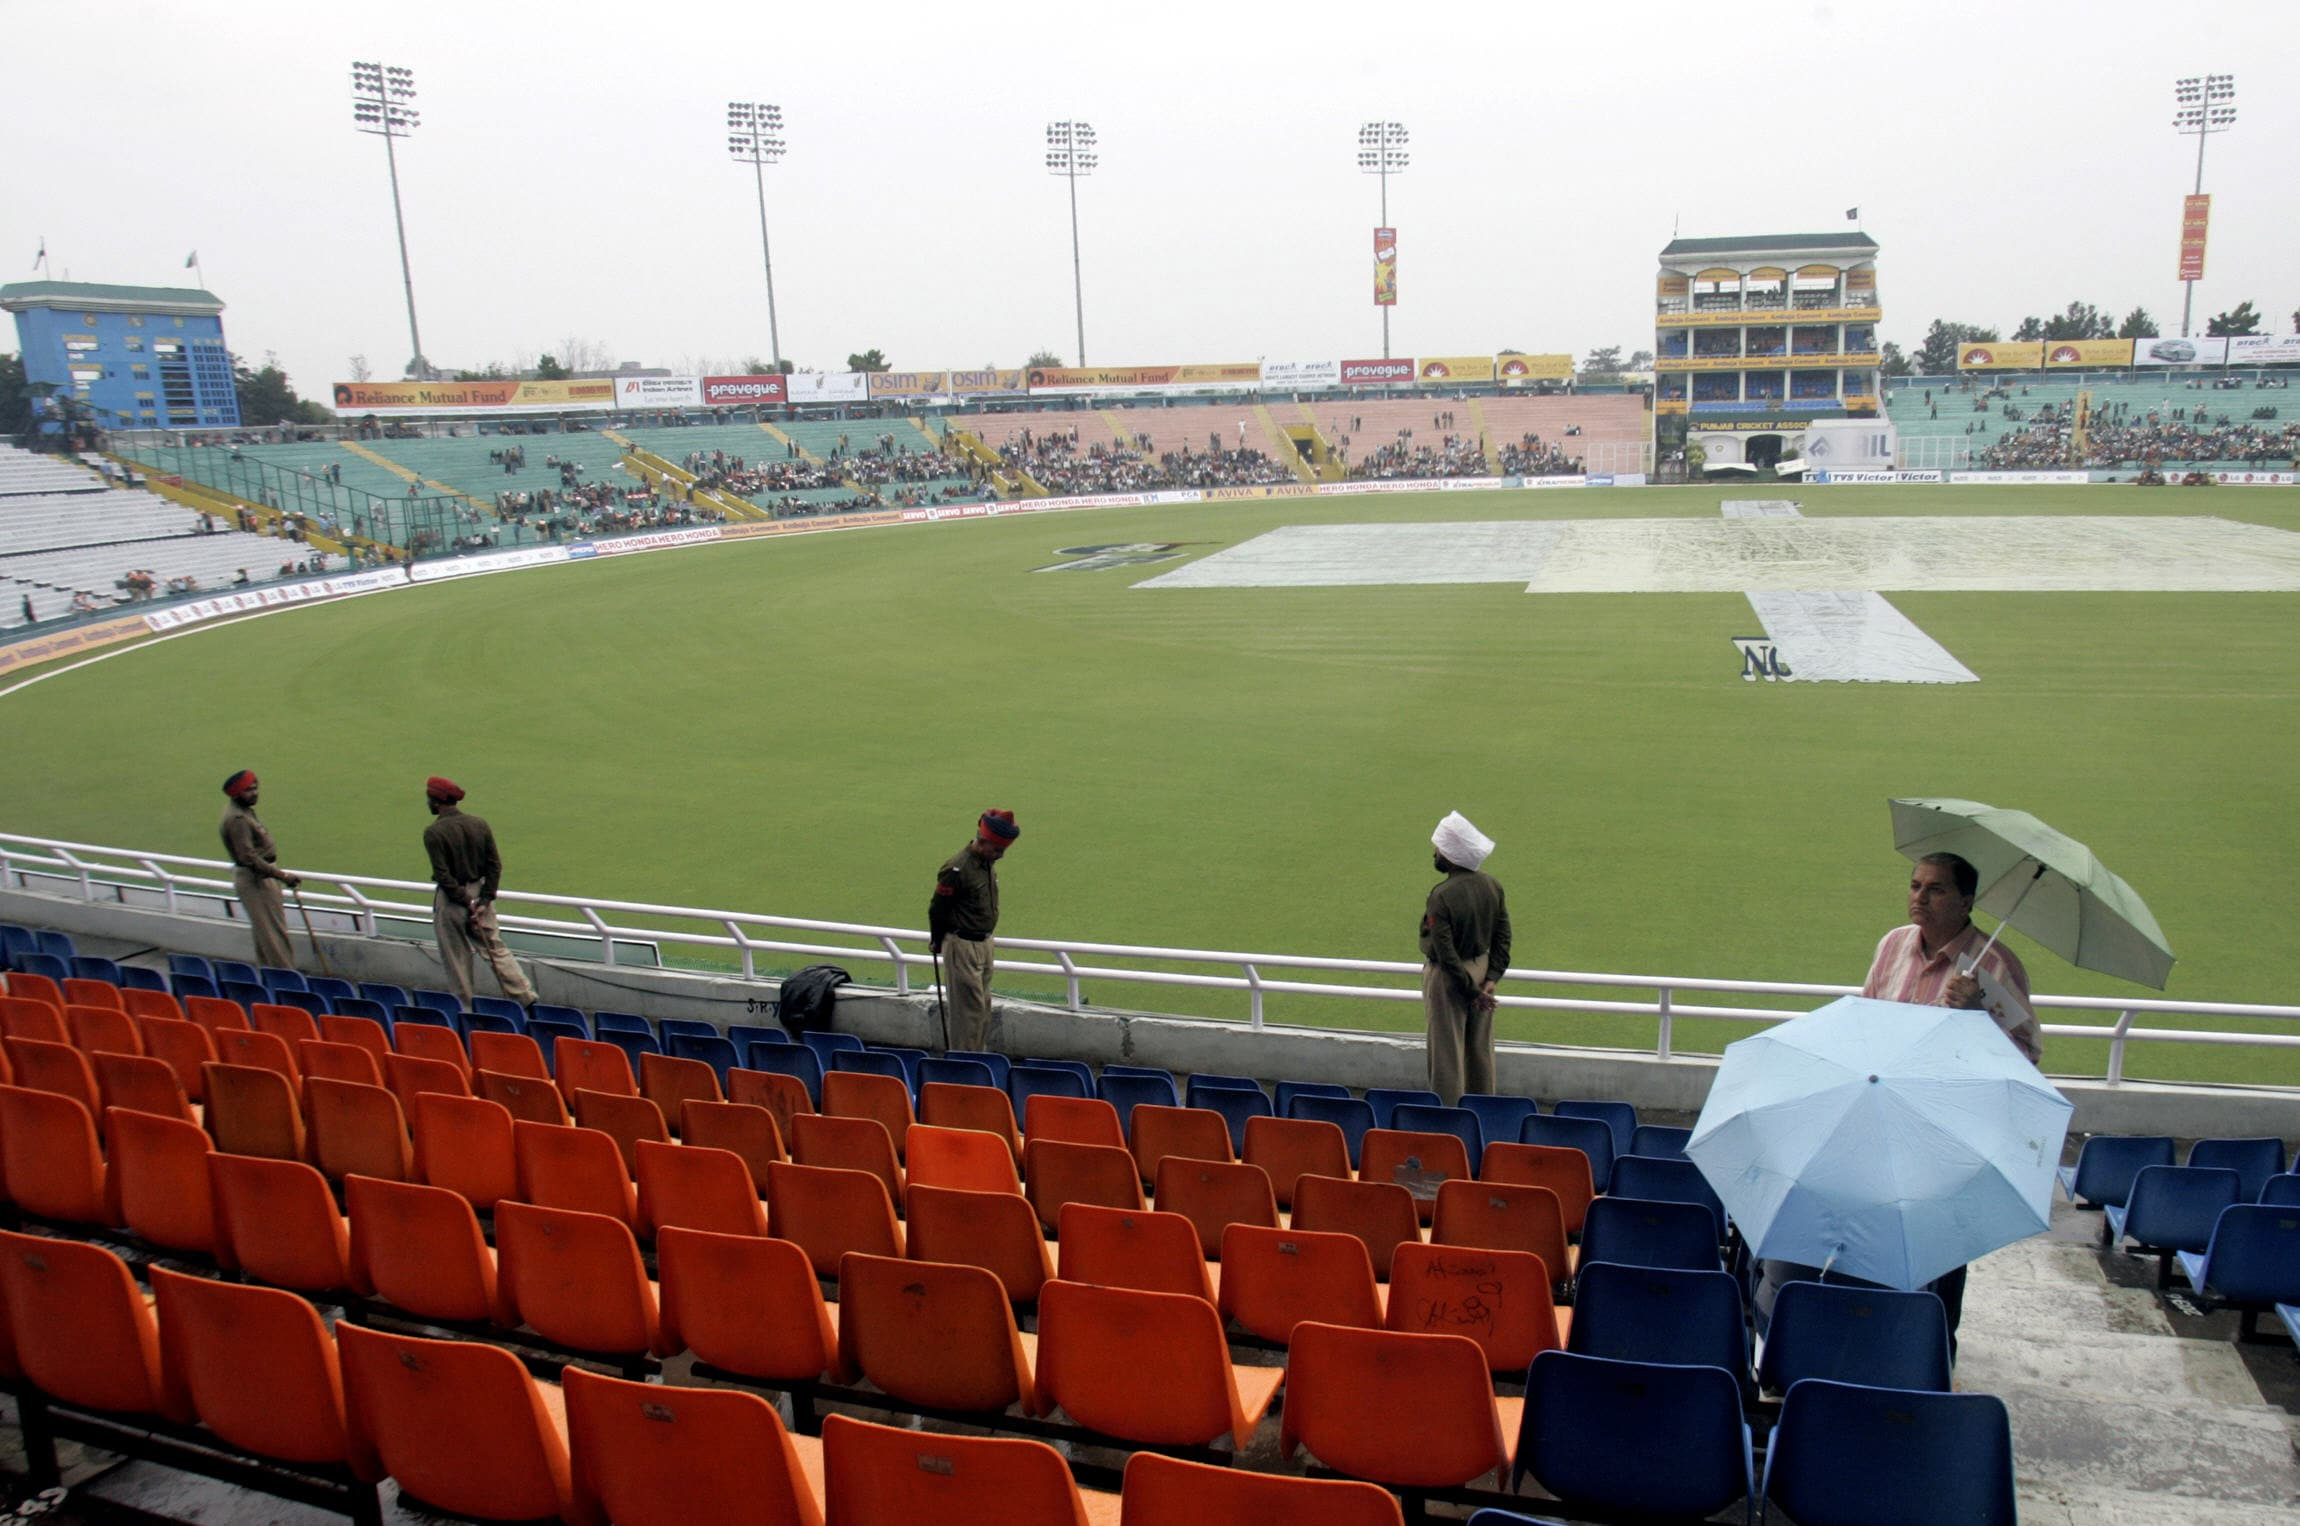 Punjab Cricket Association Stadium, Mohali